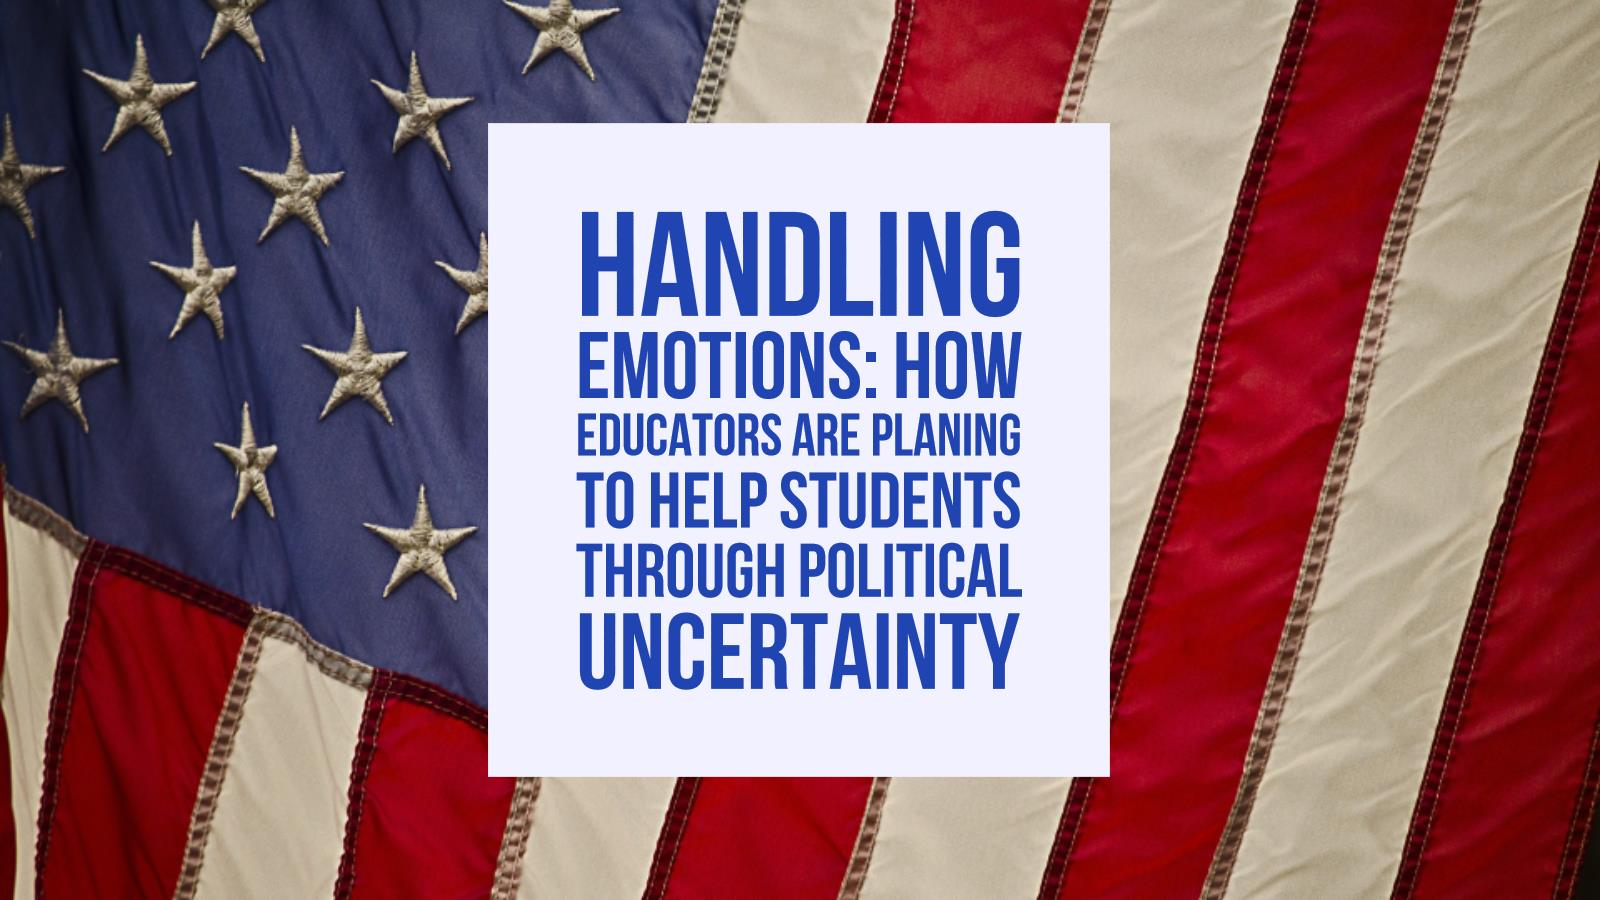 Handling emotions: How educators are planning to help students through political uncertainty